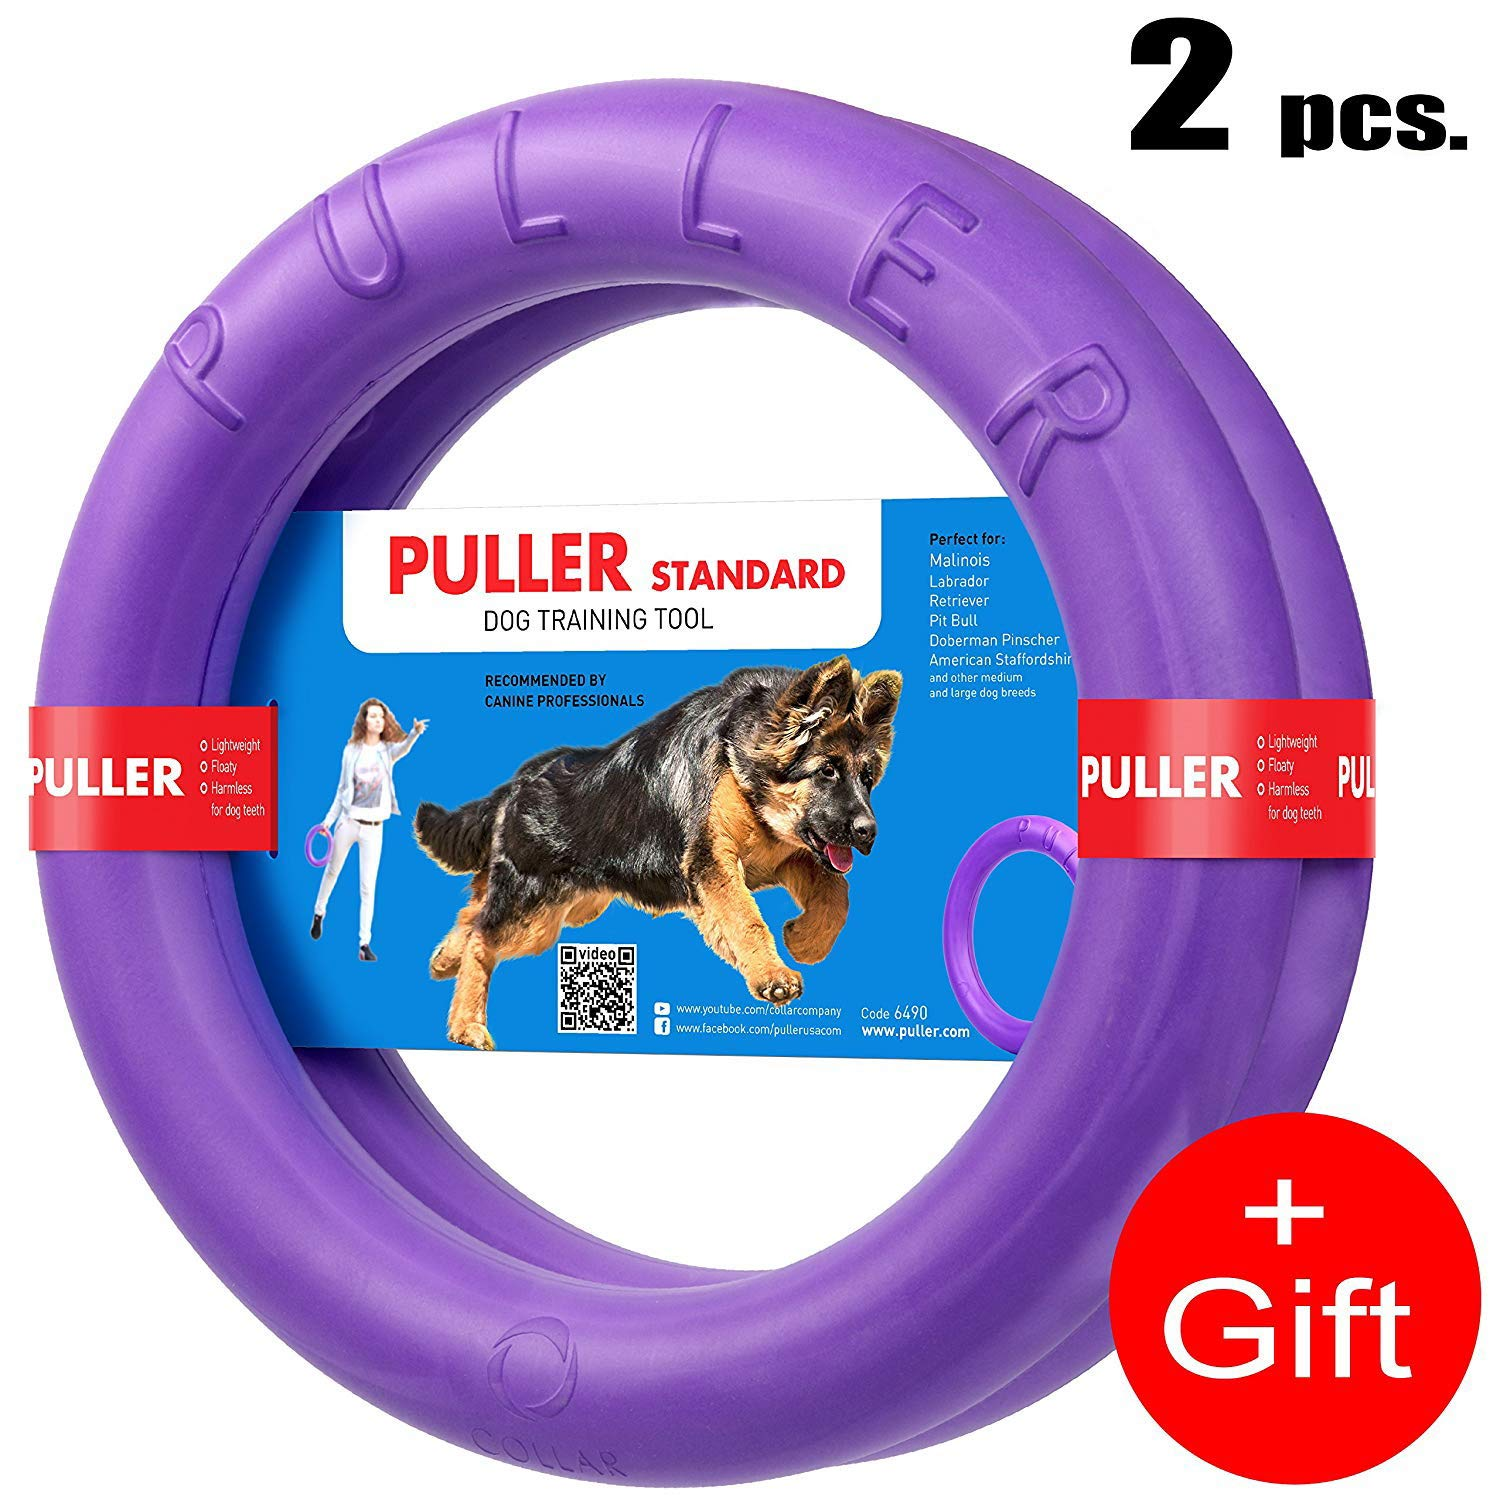 COLLAR Professional Dog Training Equipment and Bonus - Giant Medium K9 Large Dog Training Tool - Dog Supplies - Real Physical and Emotional Load Your Dog (Two Rings for M - L Size Dogs) by COLLAR